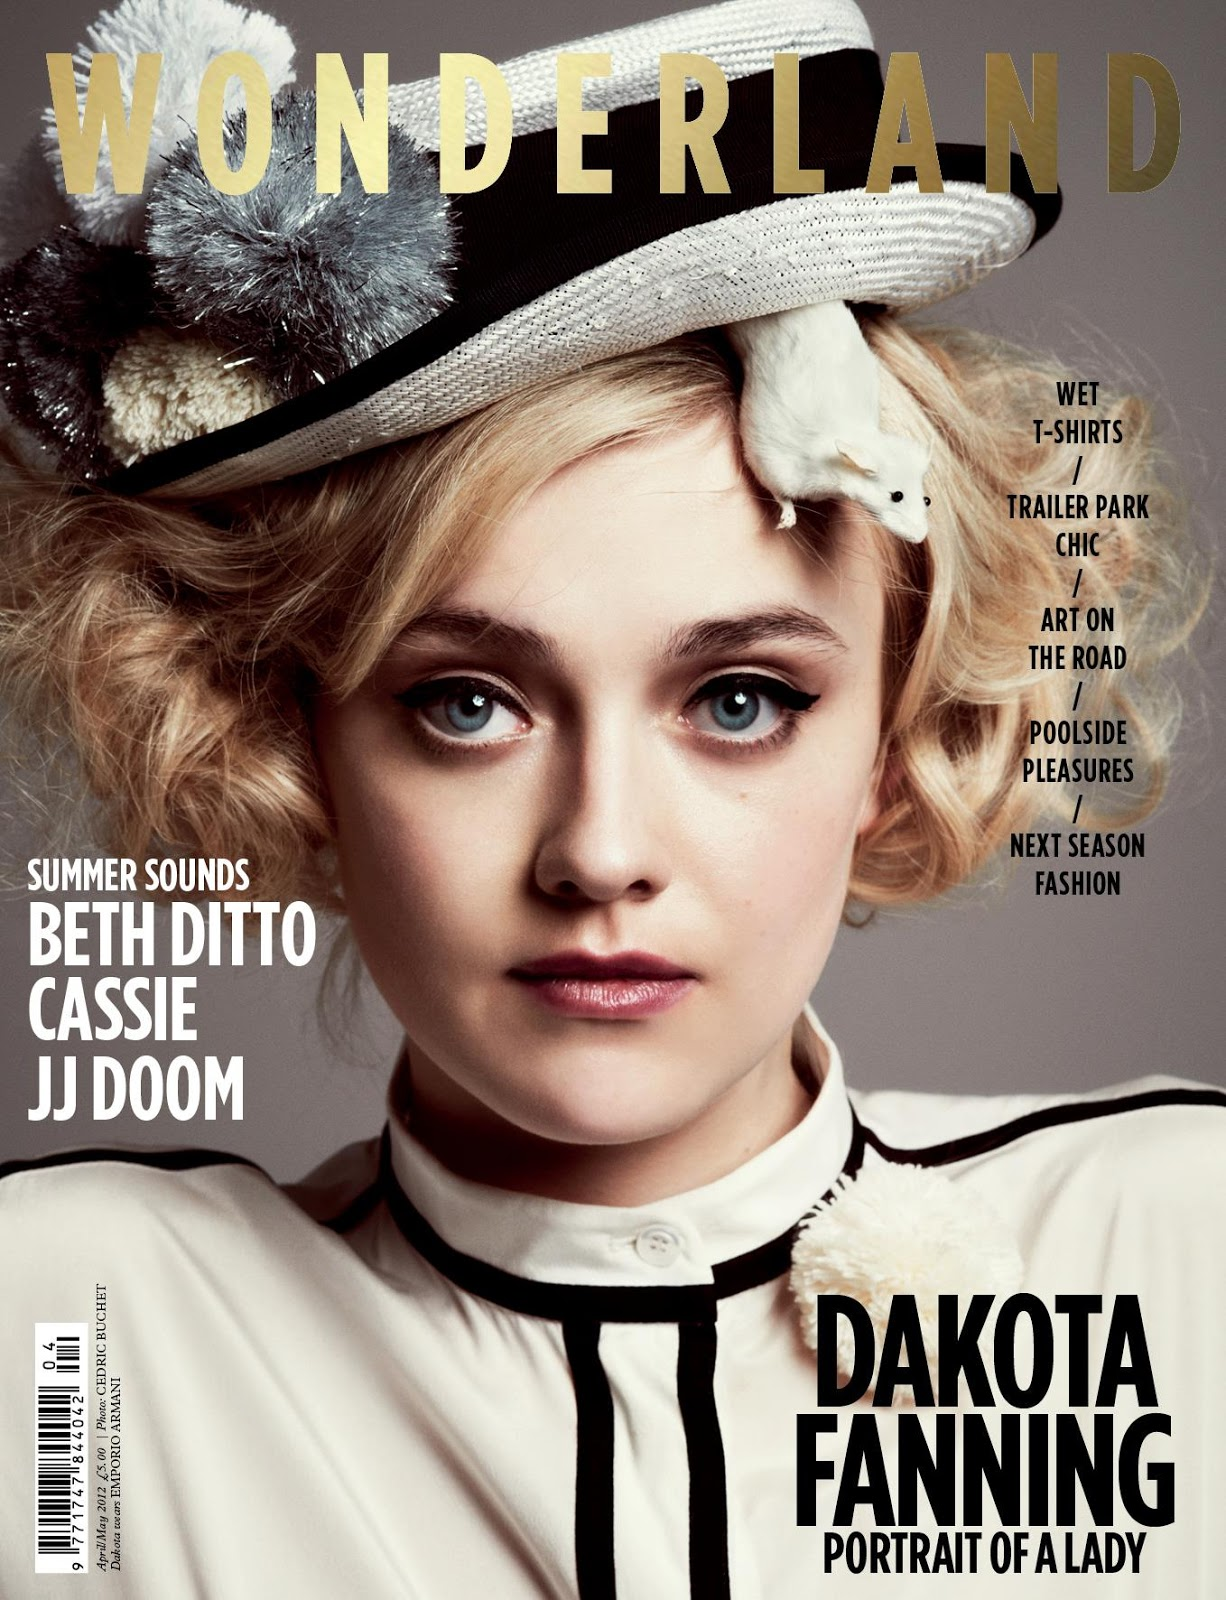 Wonderland April May 2012 Dakota Fanning by Cedric Buchet